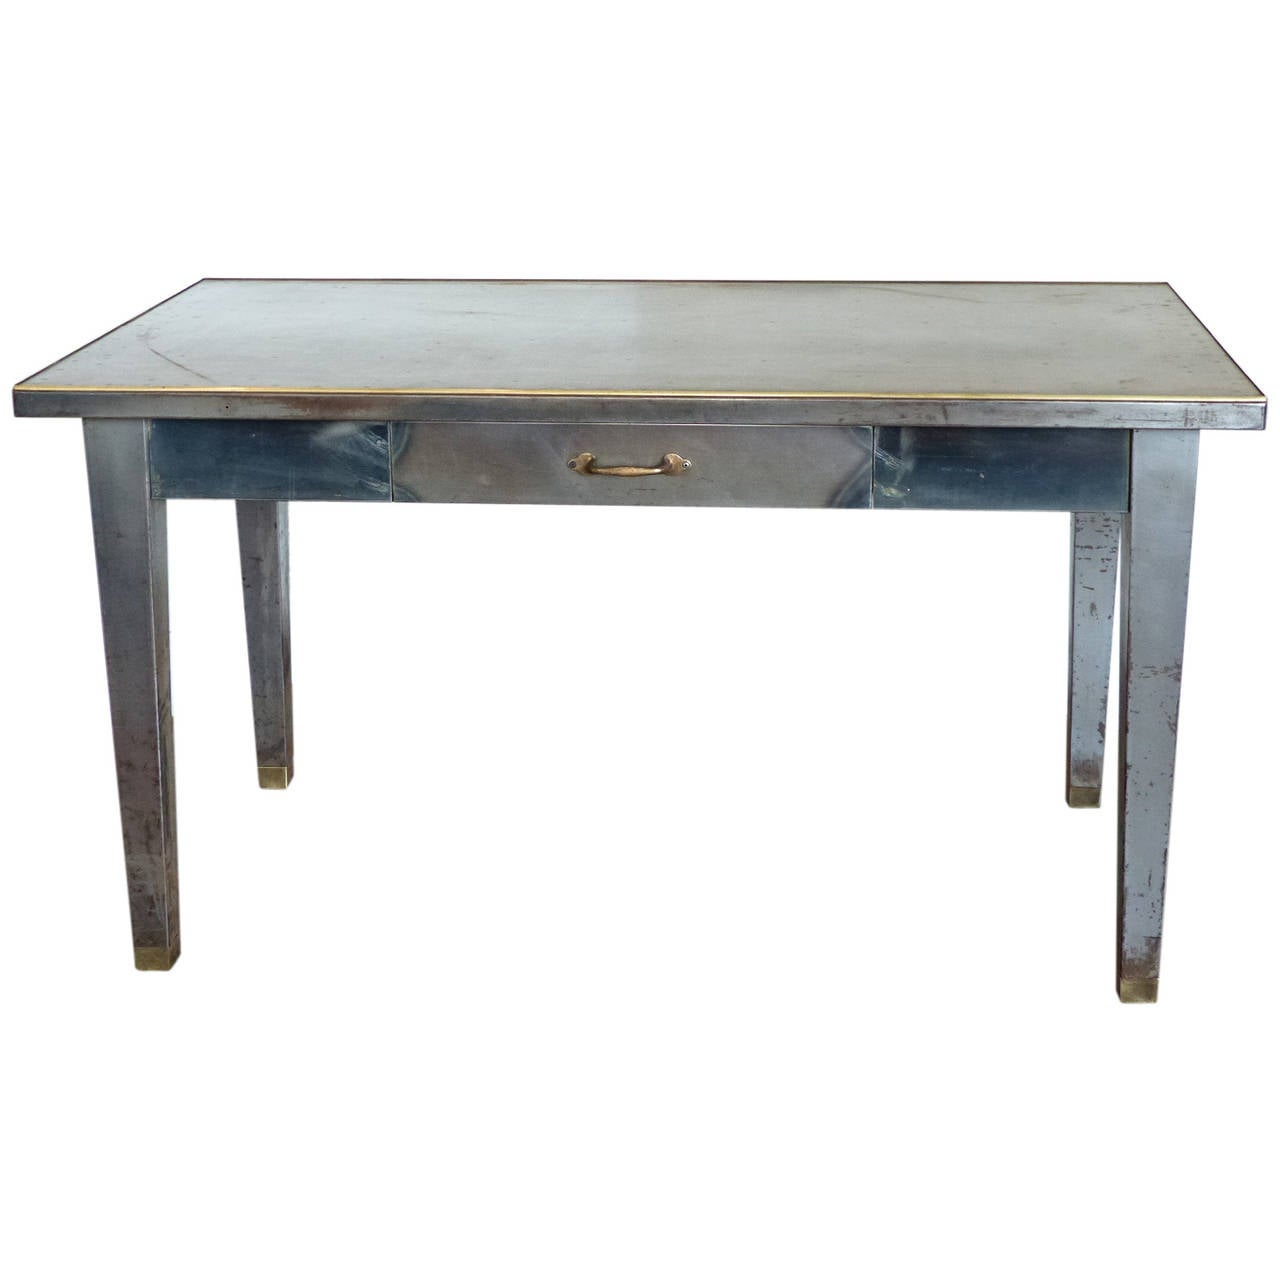 Brass edged steel office desk at 1stdibs - Metal office desk ...